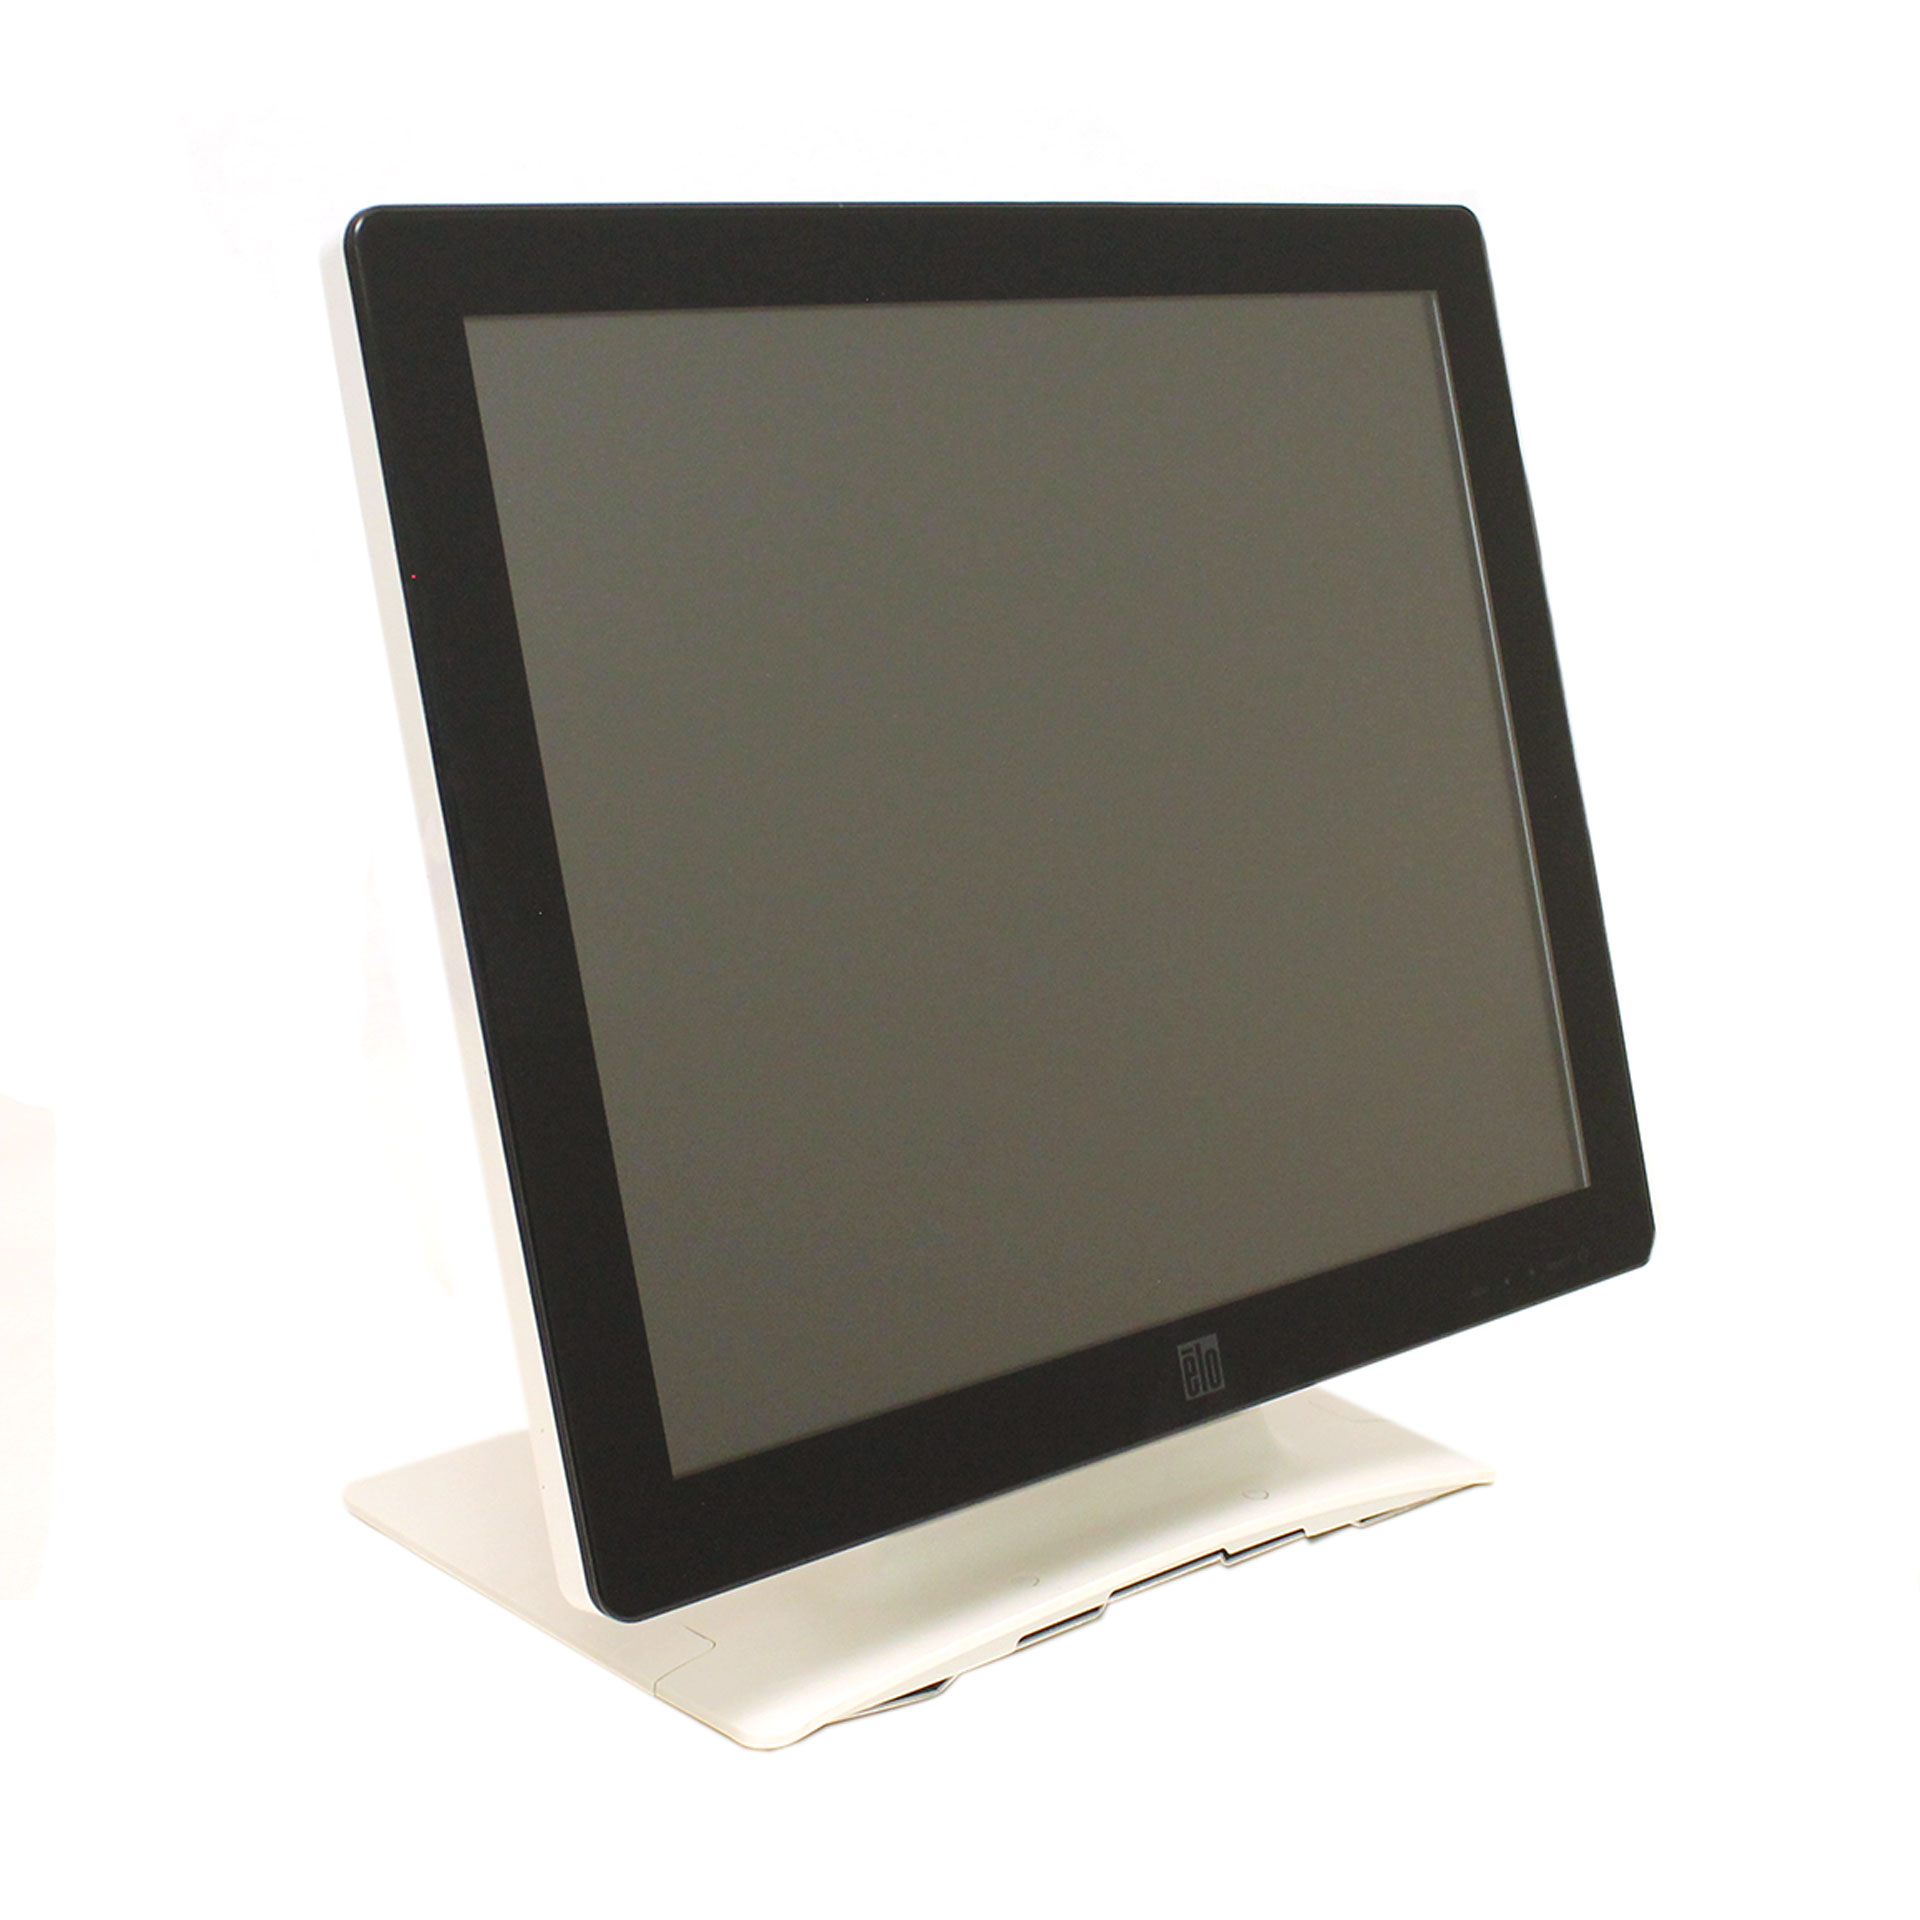 Elo Desktop Touch Screen Display 1723L iTouch Plus LED 17""